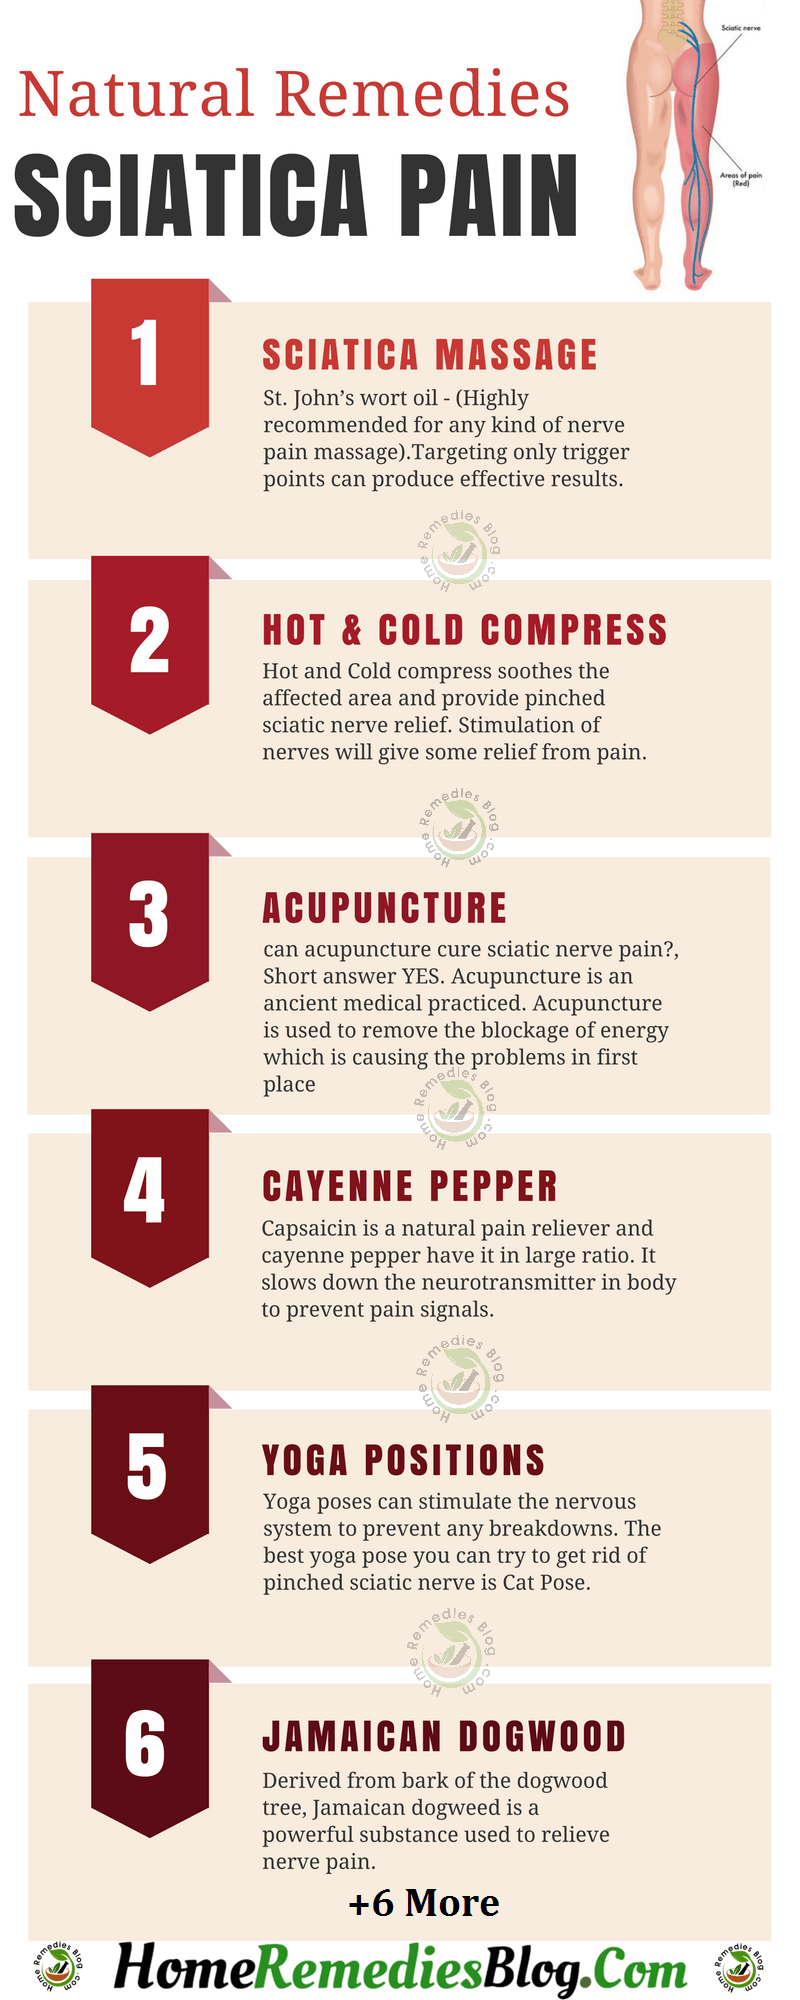 12 natural remedies for sciatica and nerve pain - home remedies blog